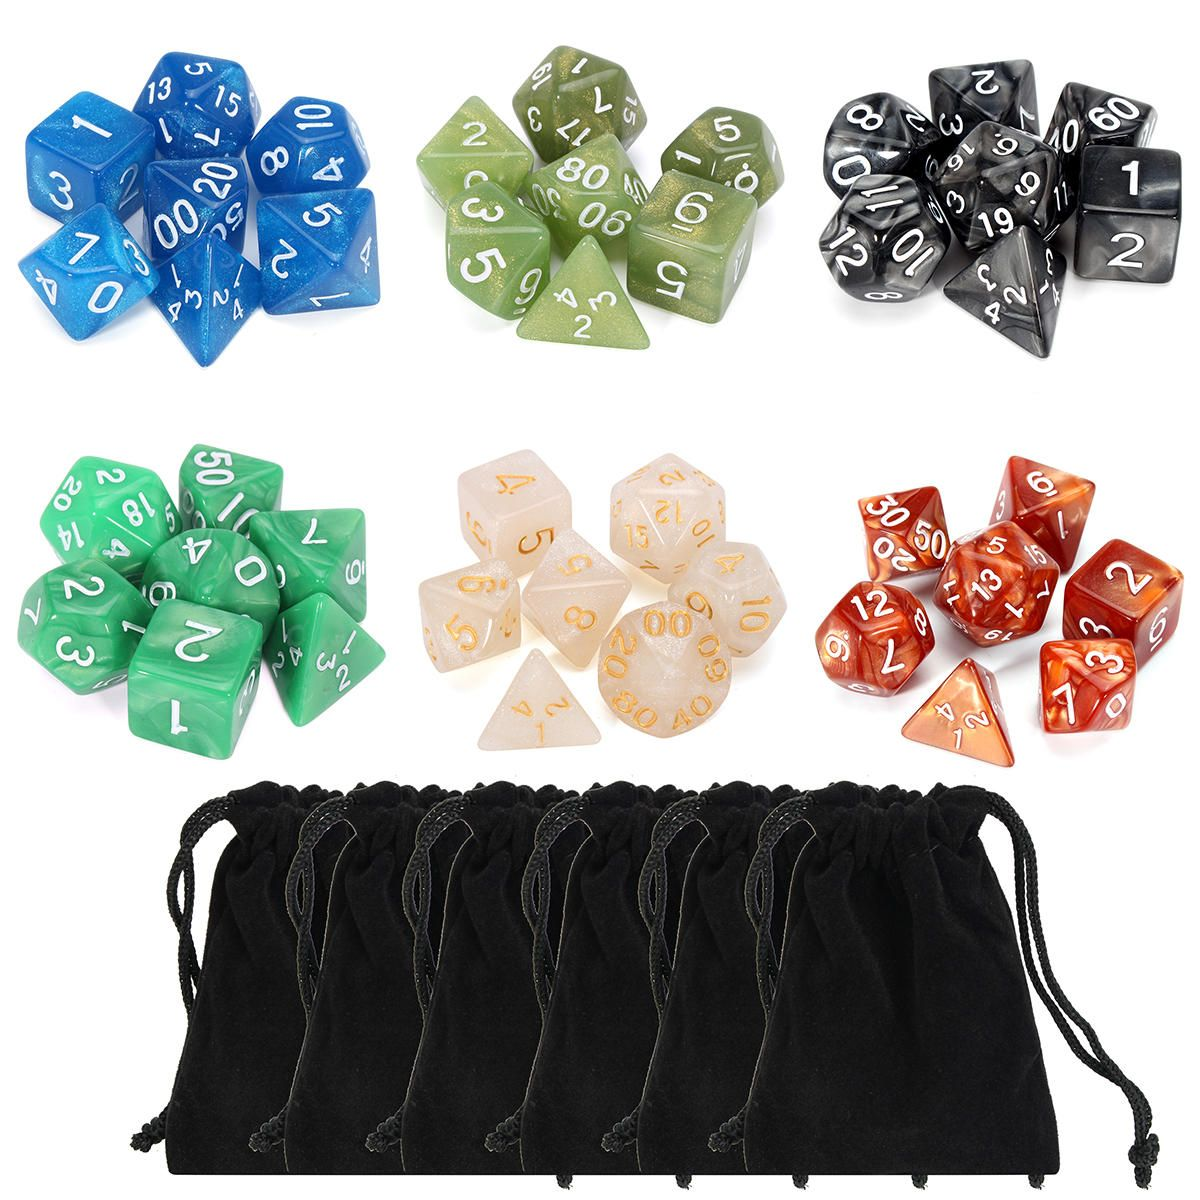 6 Sets 42pcs Polyhedral Dice Dungeons And Dragons DND RPG MTG Board Games Dice